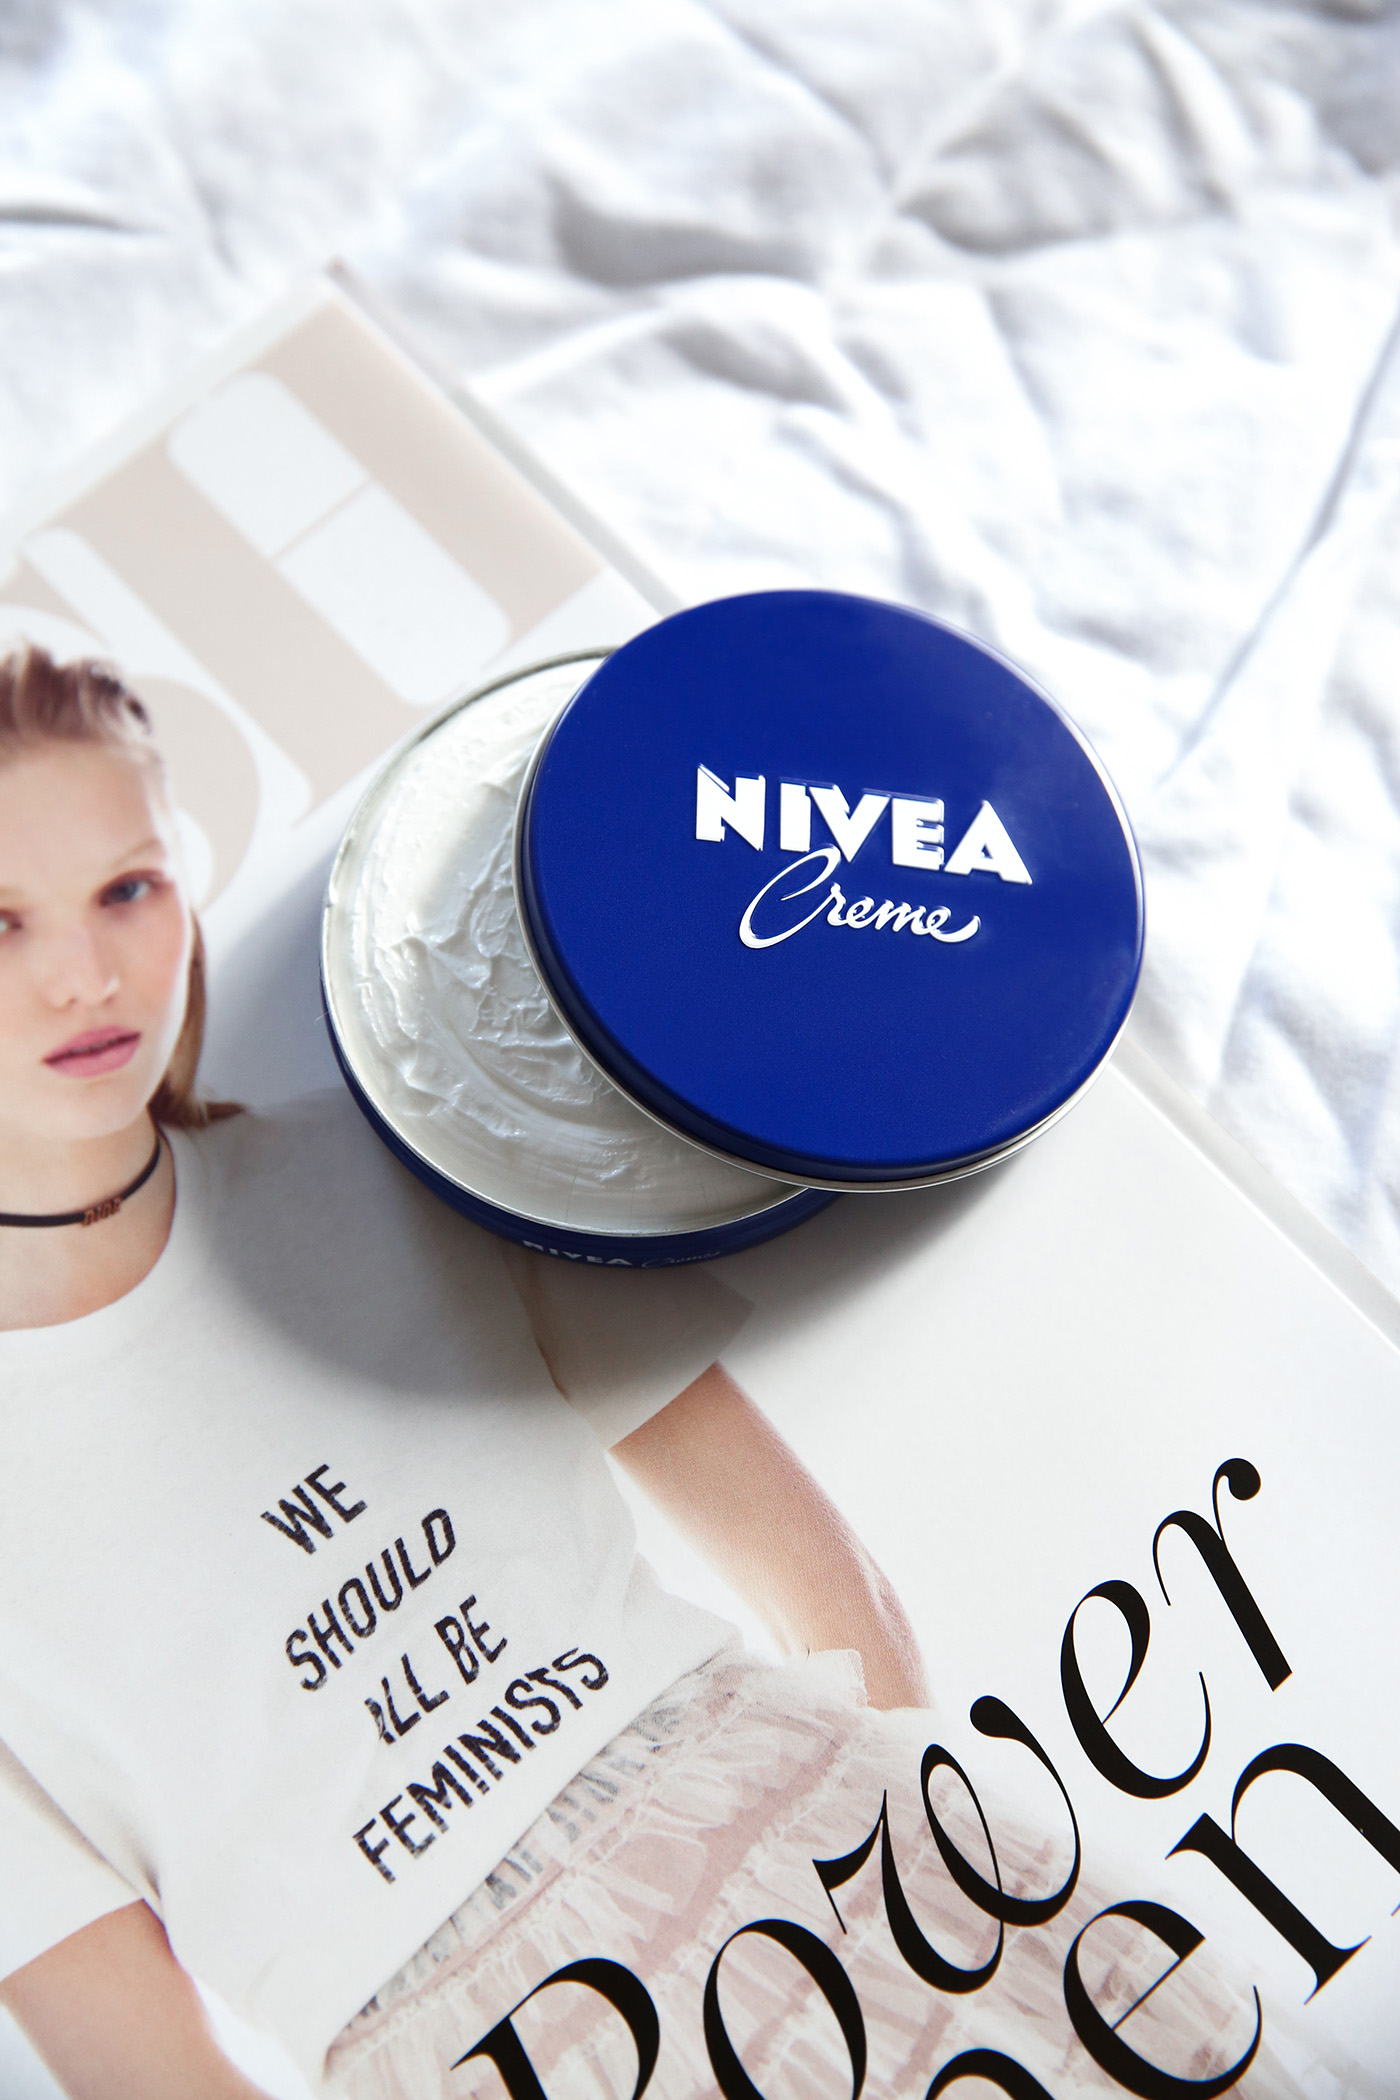 nivea creme beauty essential